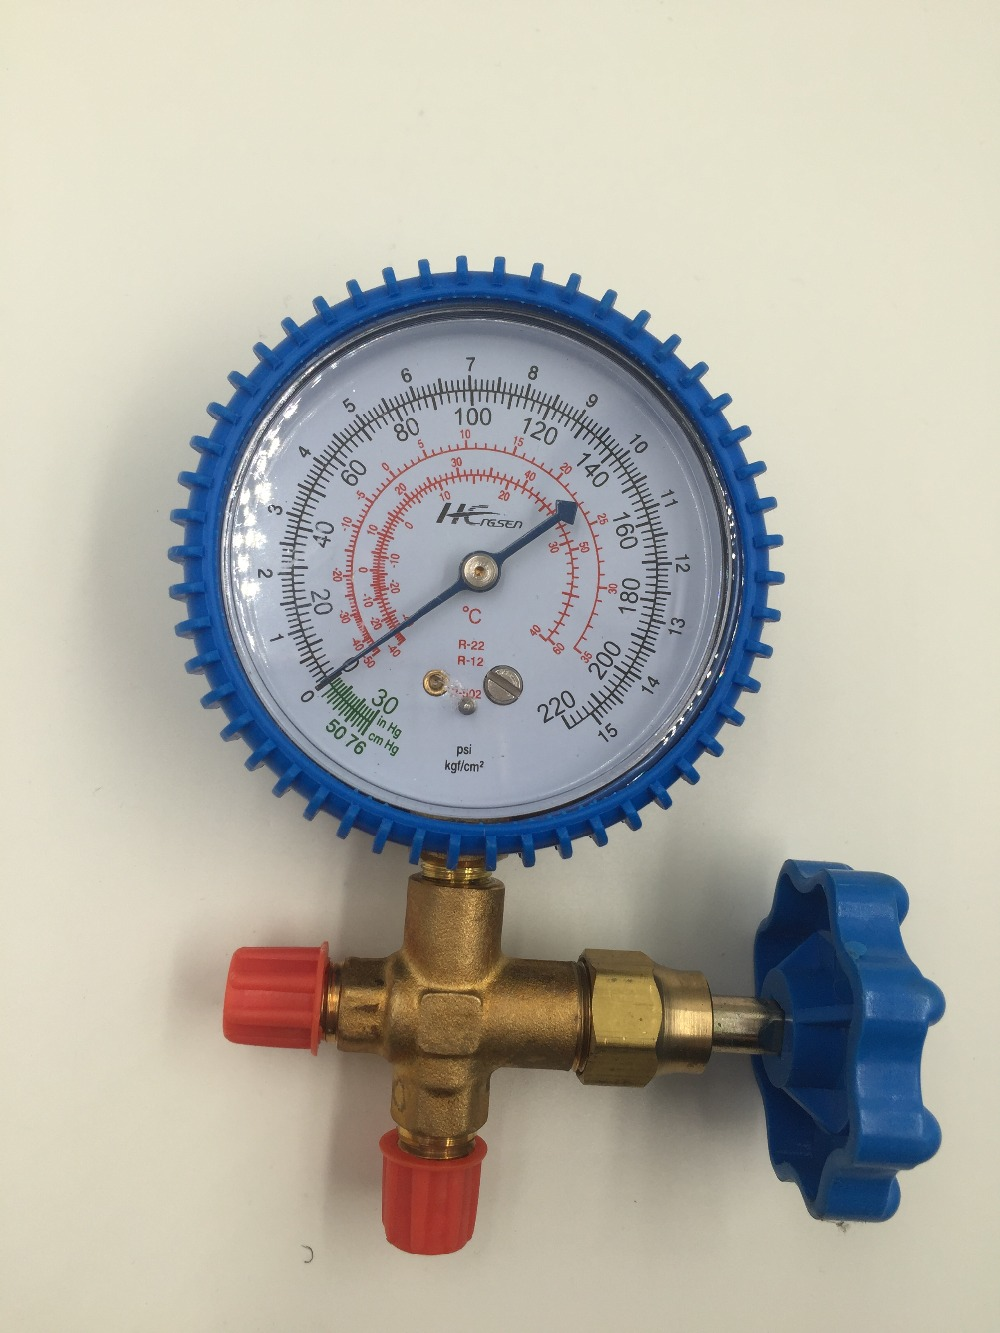 Air Conditioner Part 3-Way Valve 1/4NPT Thread Single Manifold Gauge 0-220psi 13mm male thread pressure relief valve for air compressor